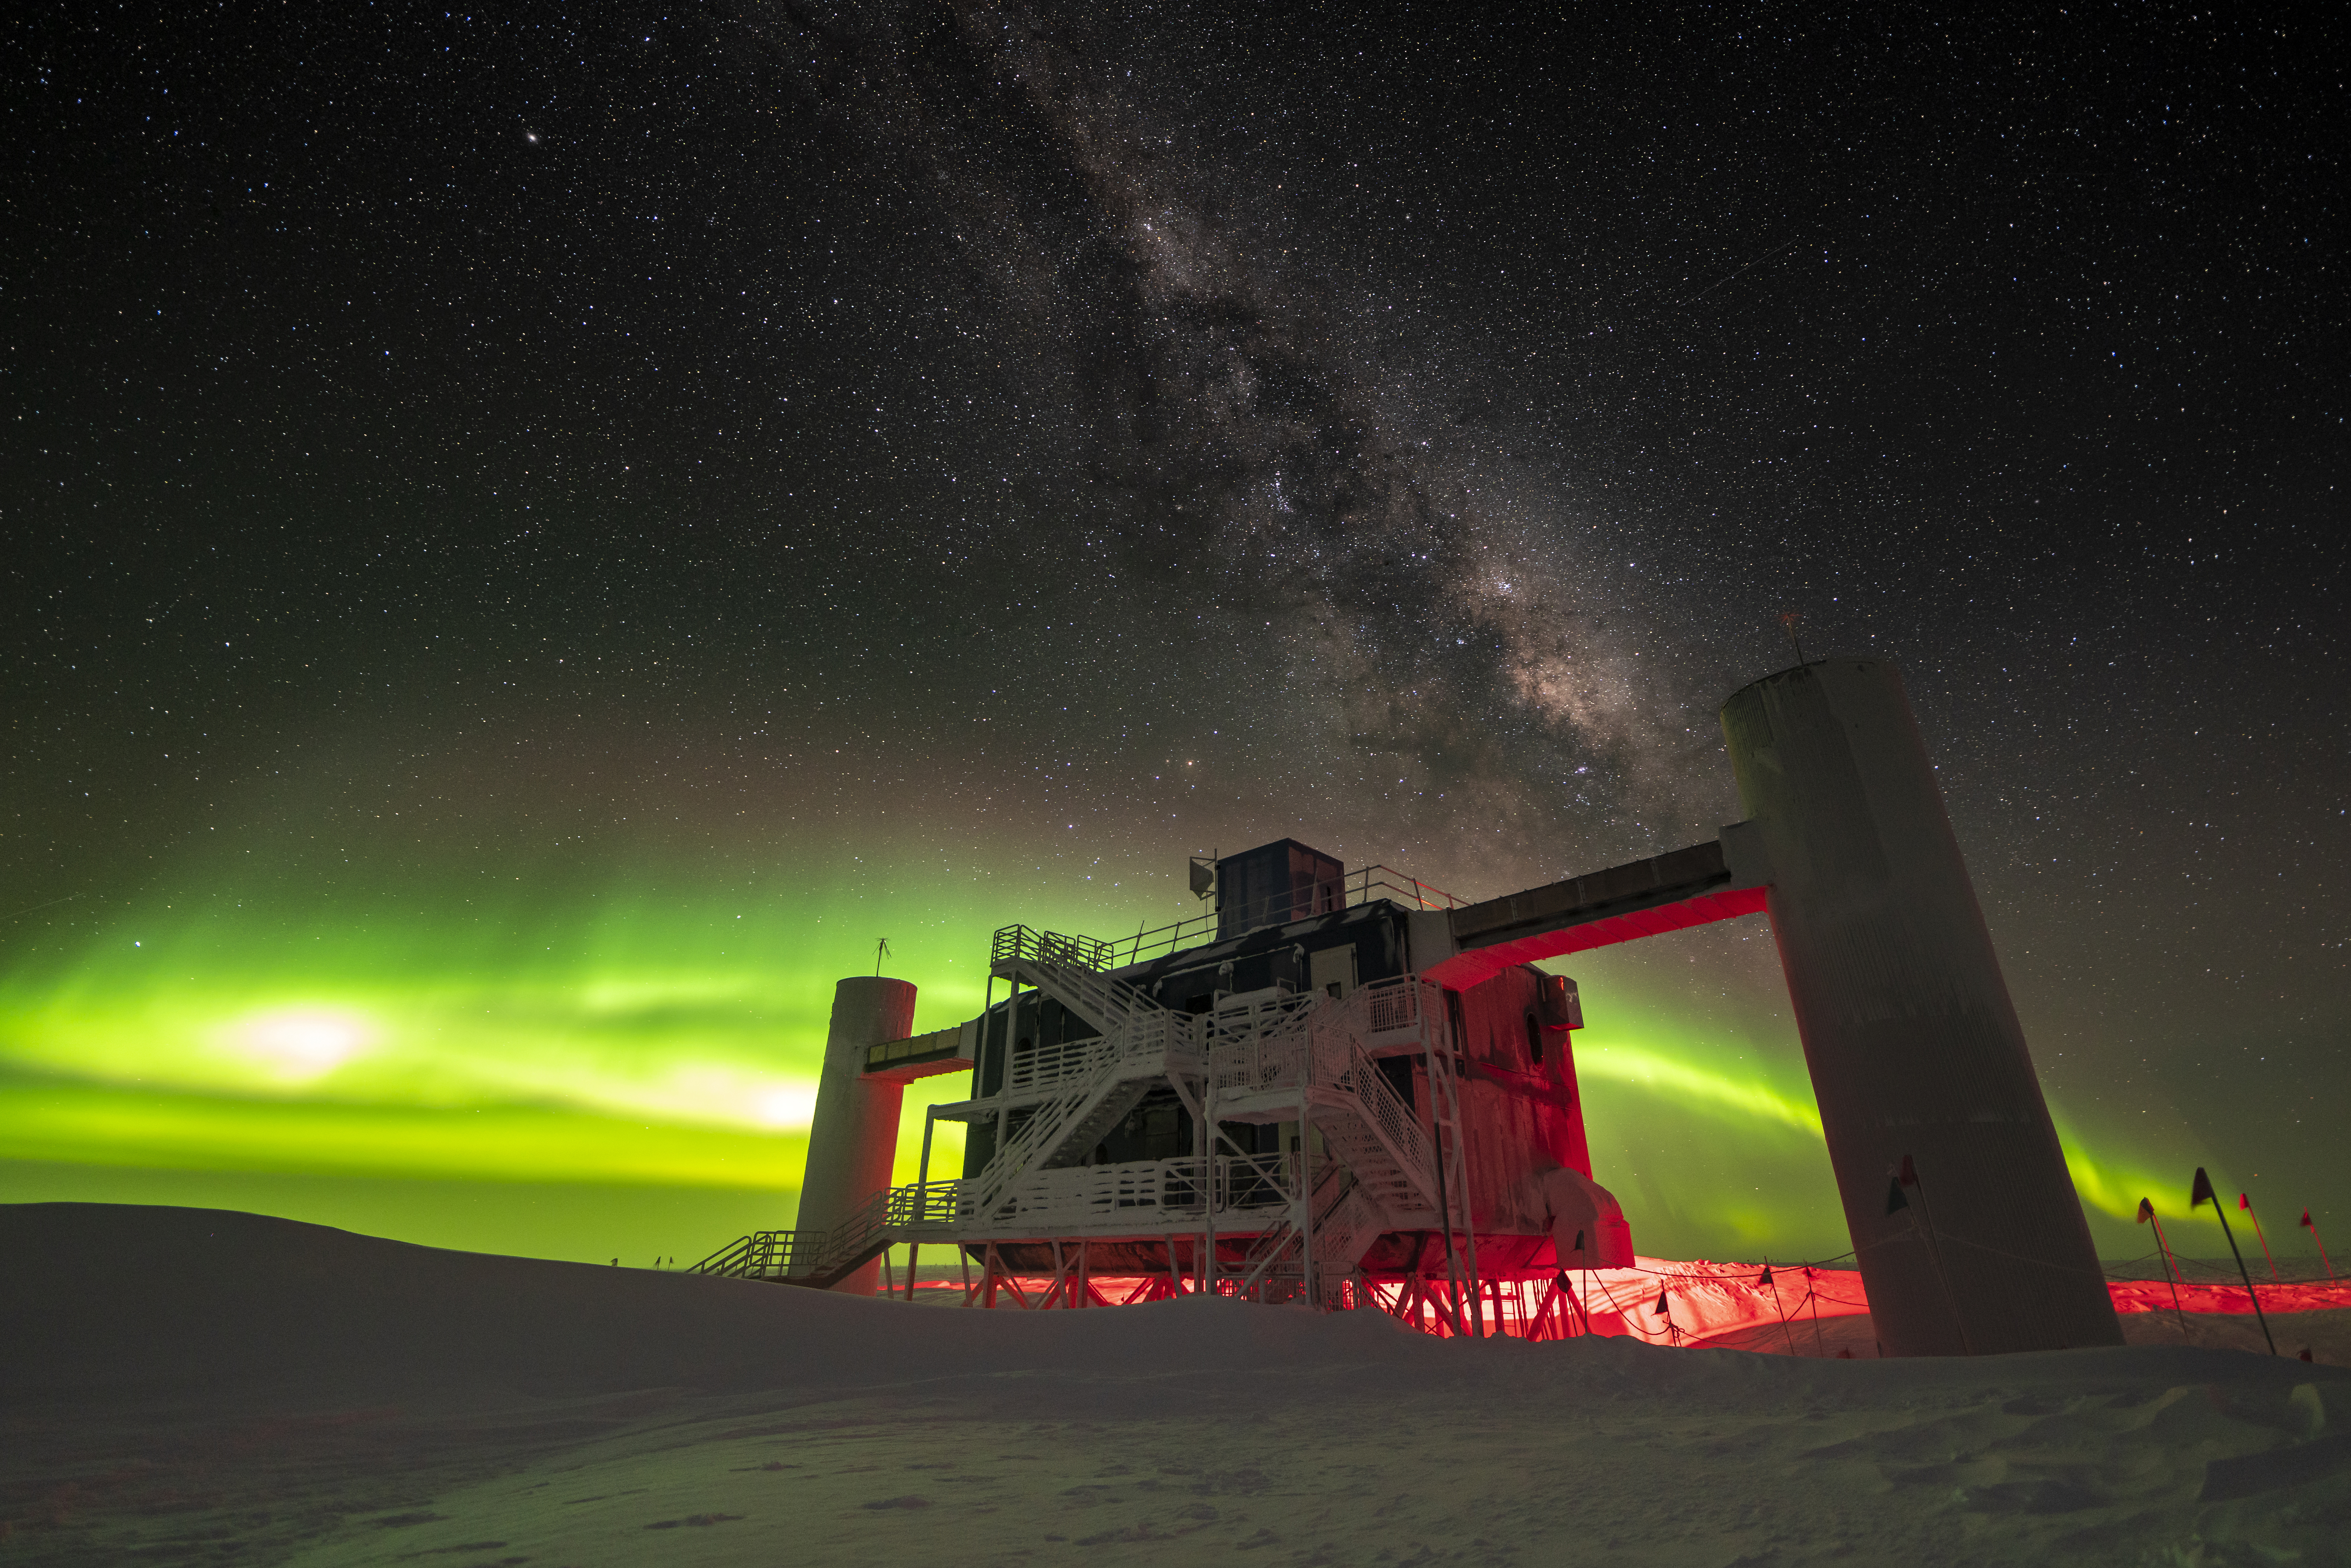 IceCube Lab backlit by low green auroras, with Milky Way overhead.